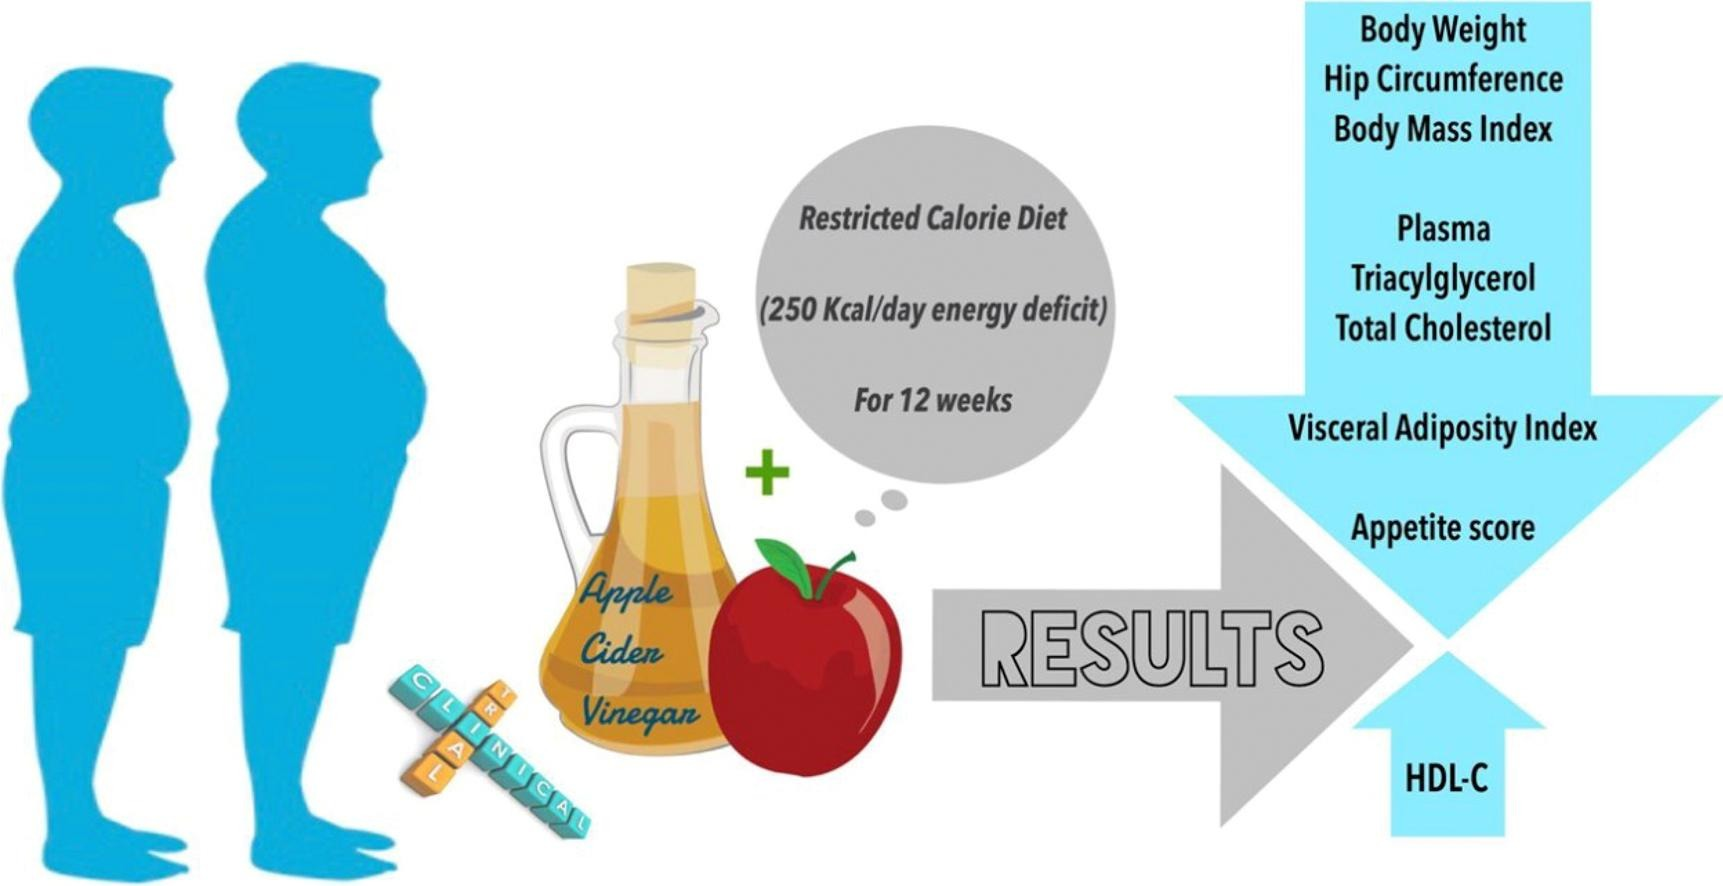 Beneficial effects of Apple Cider Vinegar on weight management, Visceral Adiposity Index and lipid profile in overweight or obese subjects receiving restricted calorie diet: A randomized clinical trial